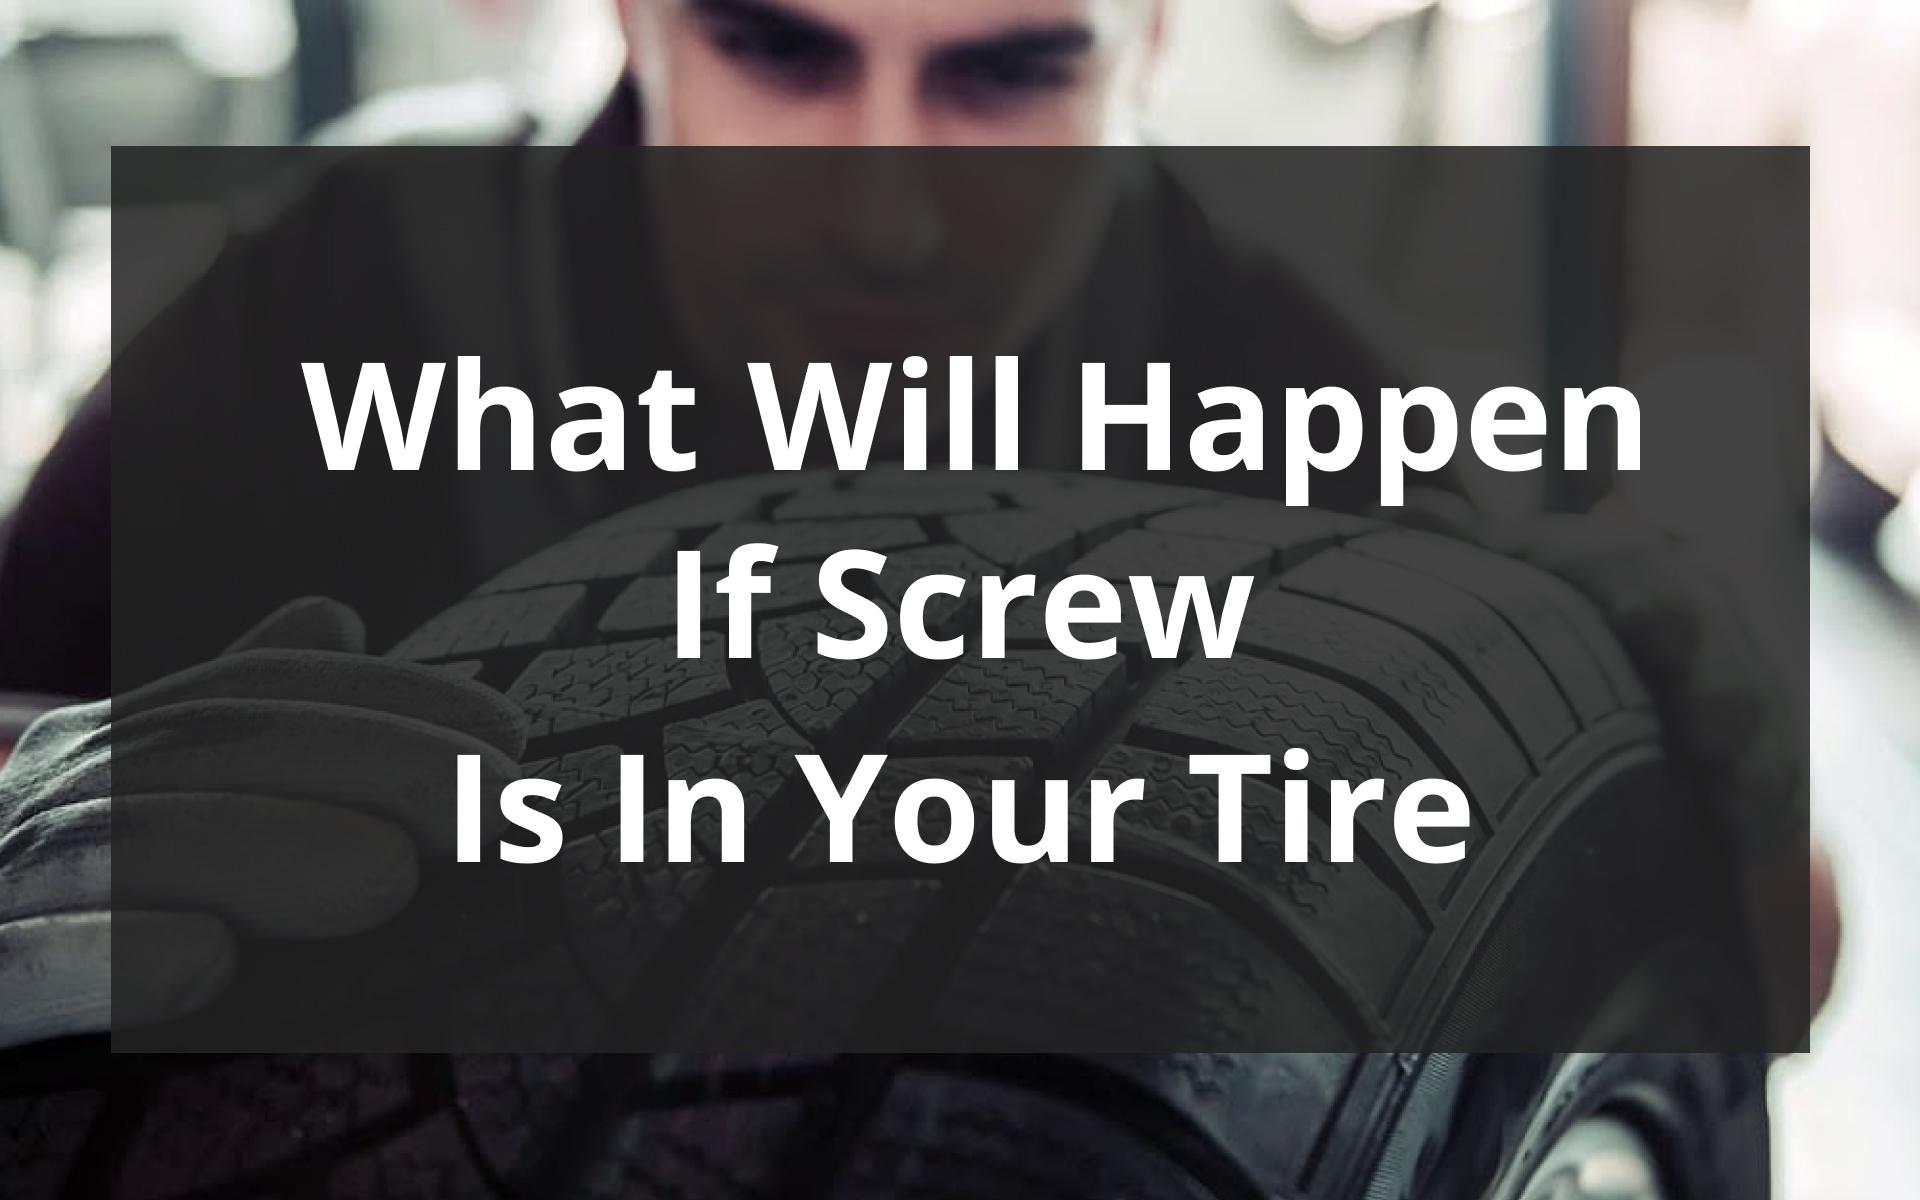 What Will Happen If Screw Is In Your Tire image